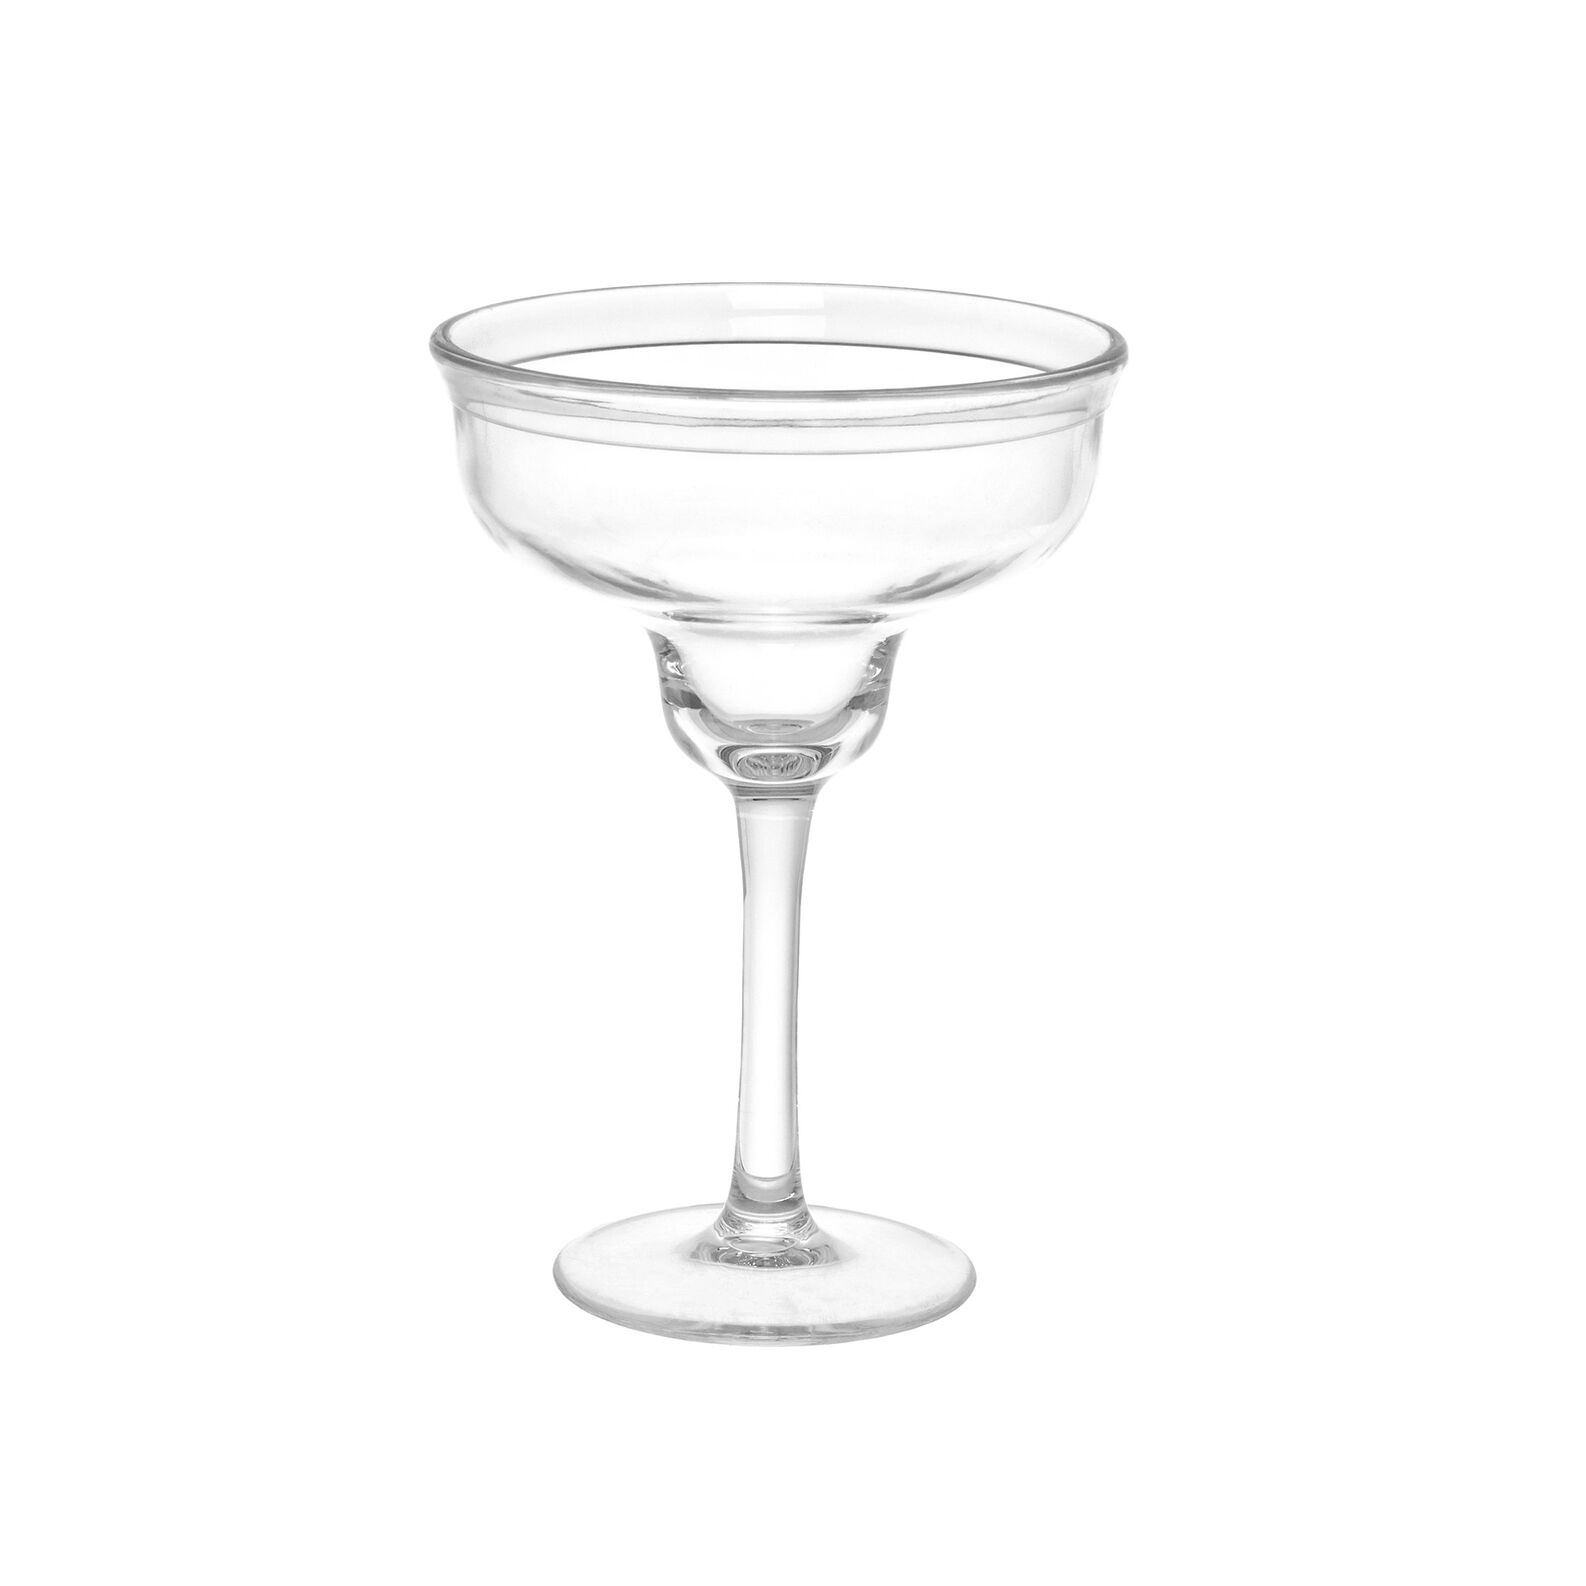 MS plastic margherita glass